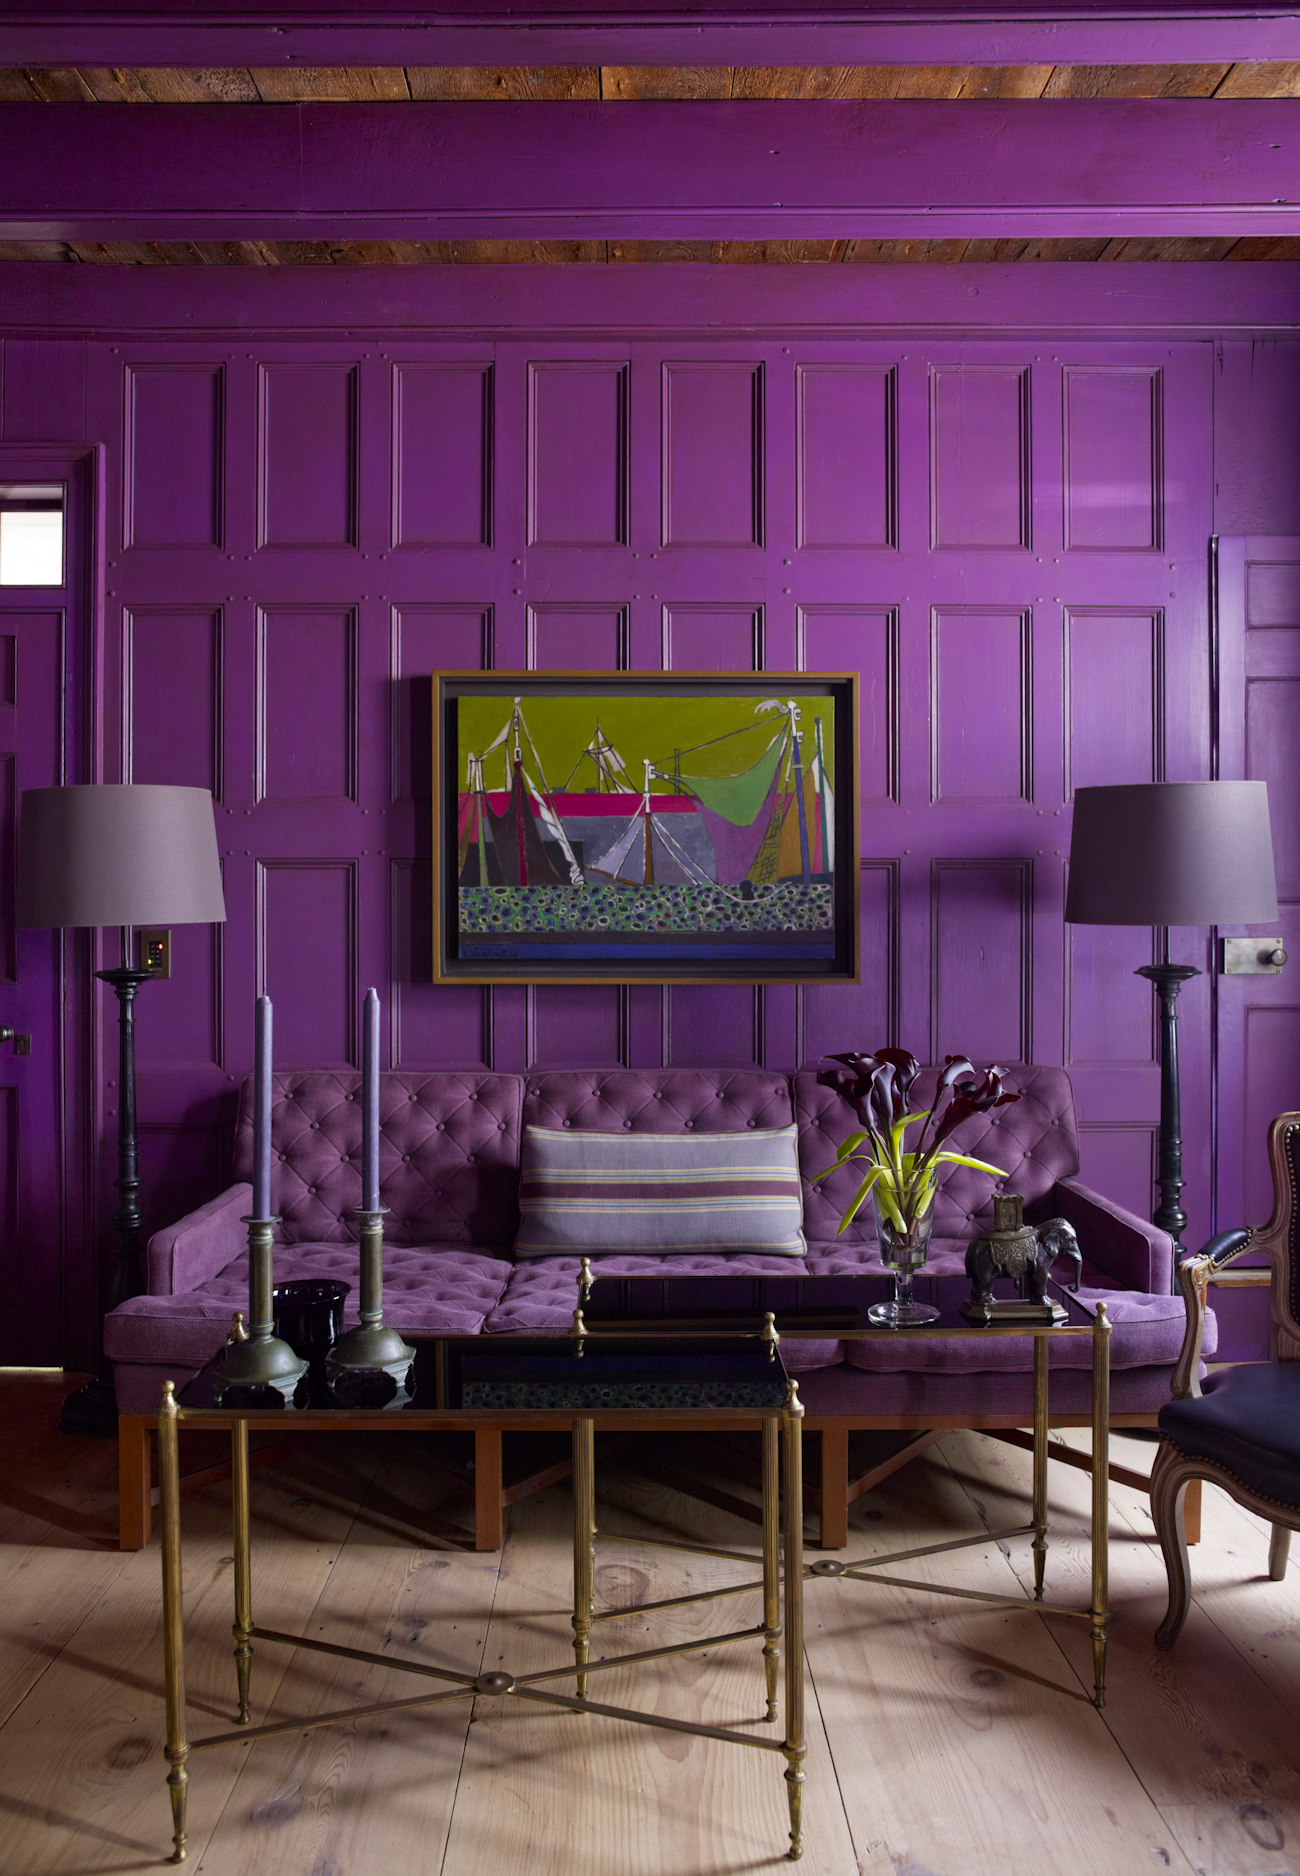 """1. Bold, Monochromatic Color Palettes   Whether with saturated blues, purples, or reds,more designers are embracingbold, monochromatic color palettes. """"The color palette feels strong and masculine, and impactful, yet modern and unexpected,""""saysSteven Gambrel. """"I think bold, monochromatic color palettes appeal to modern-day sensibilities of a more simple environment. It seems like the overuse of very neutral environments has been countered by these impactful rooms; plus,both work together in projects.""""  In the front room of an18th-century waterfront house in Sag Harbor, Gambrel drew inspiration from the past. """"Sea captains liked to show off their wealth so they often embellished the front rooms of their houses,"""" he says. """"Deep saturated pigments were impossibly expensive, so this is a color that simply couldn't have been achieved in a house like this."""""""